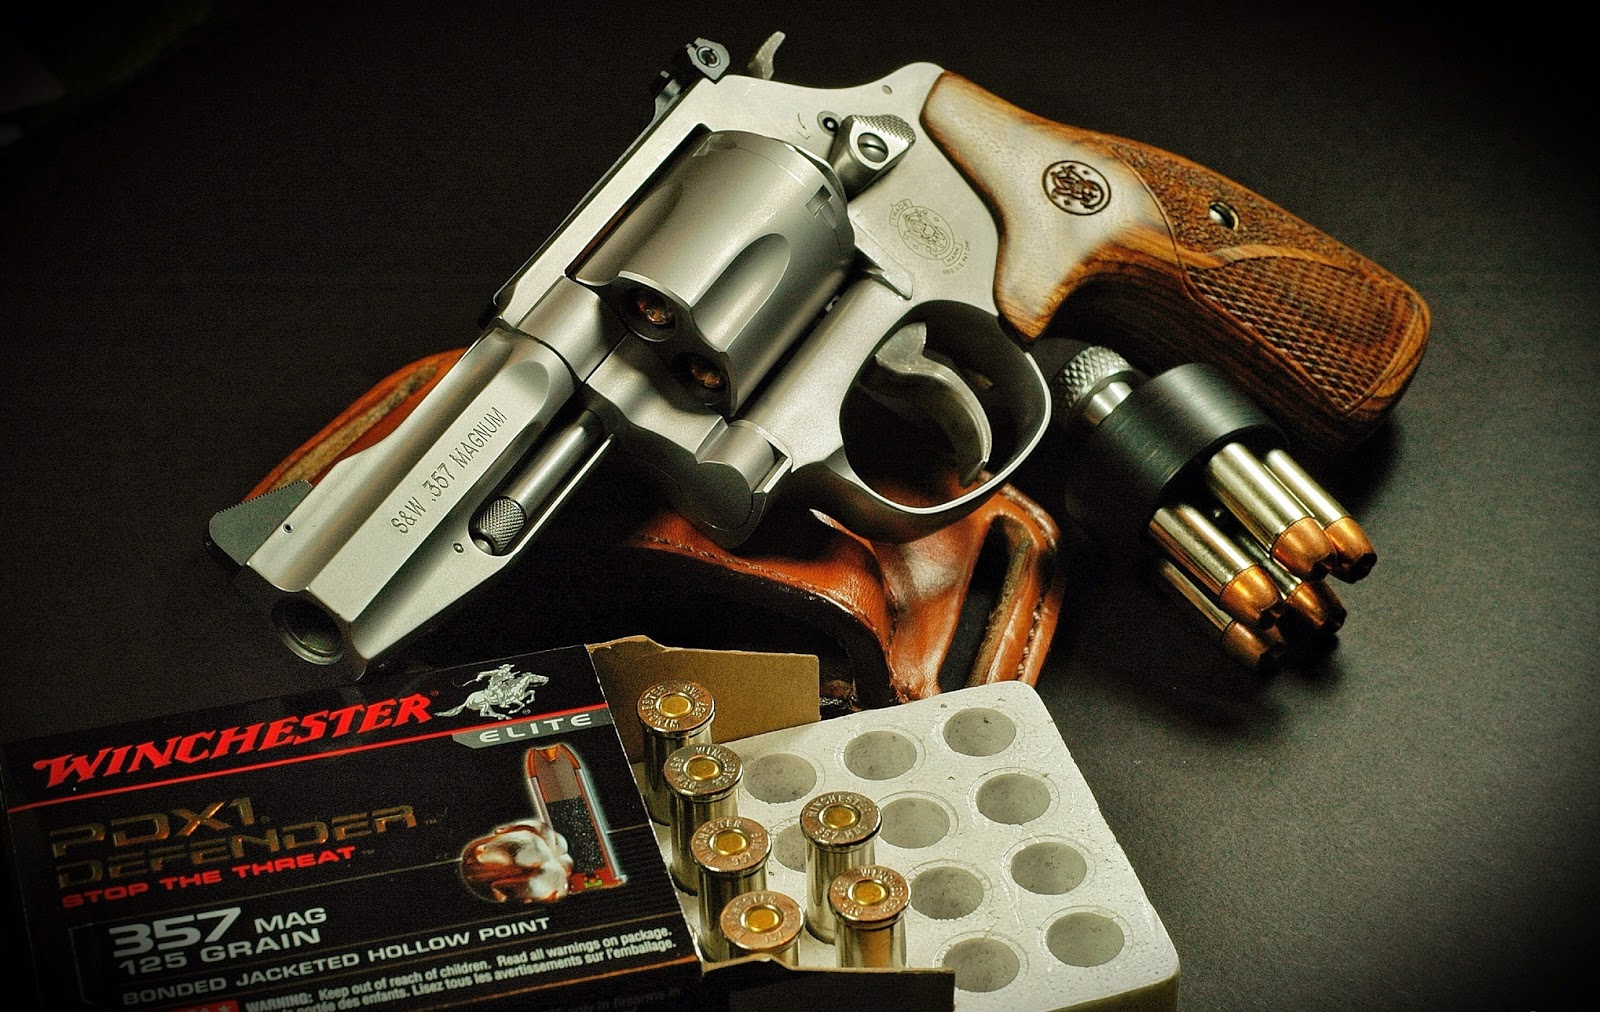 http://3.bp.blogspot.com/-A0NgxKUZmxY/UWZRc24s7tI/AAAAAAABQjk/JhZ5AK18o30/s1600/Smith+and+Wesson+Model+60+Pro.jpg